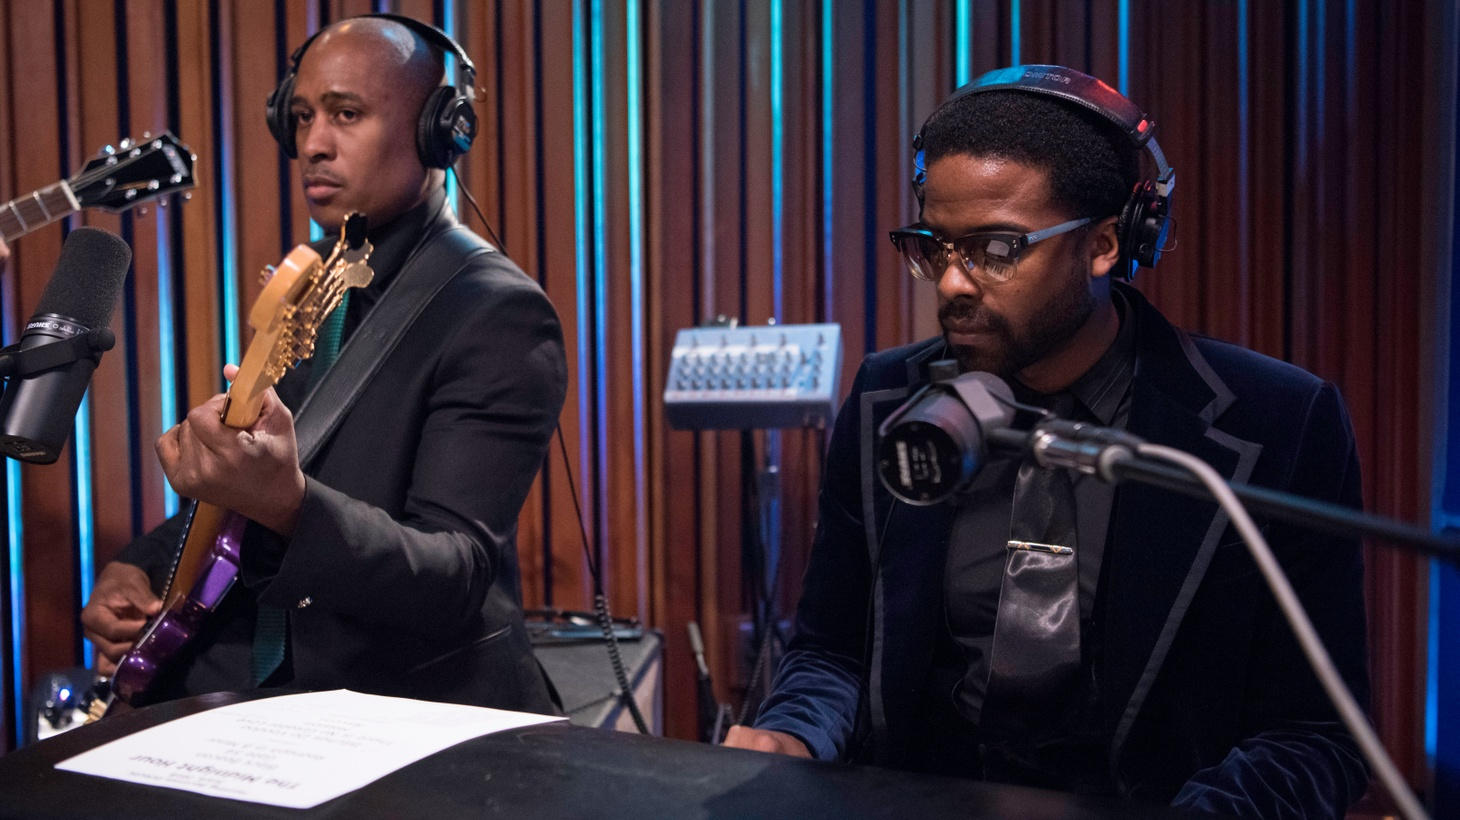 Two of hip-hop's most skilled composers, Ali Shaheed Muhammad of A Tribe Called Quest and Adrian Younge, partner up as The Midnight Hour. Their newly-released self-titled debut is a favorite across our airwaves.